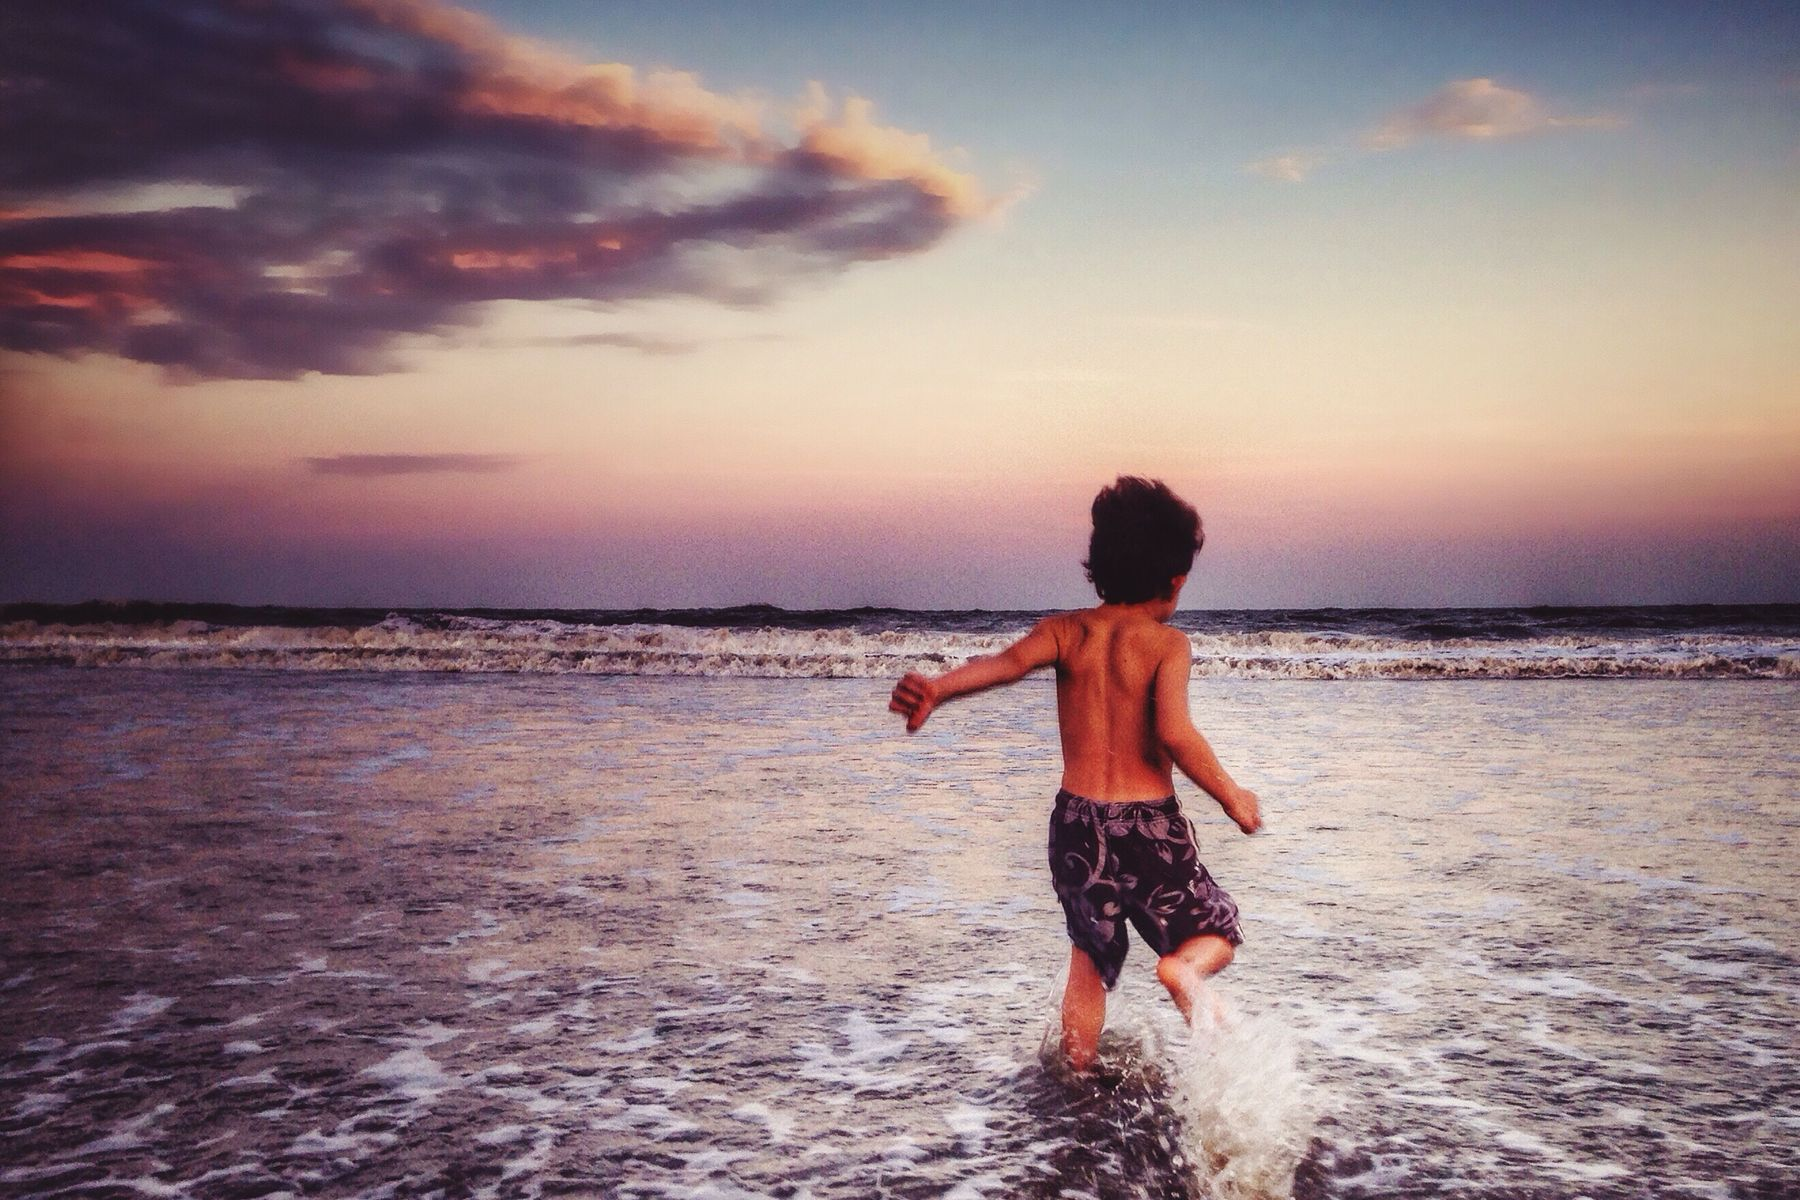 Small boy wearing patterned swim trunks running into the ocean at sunset